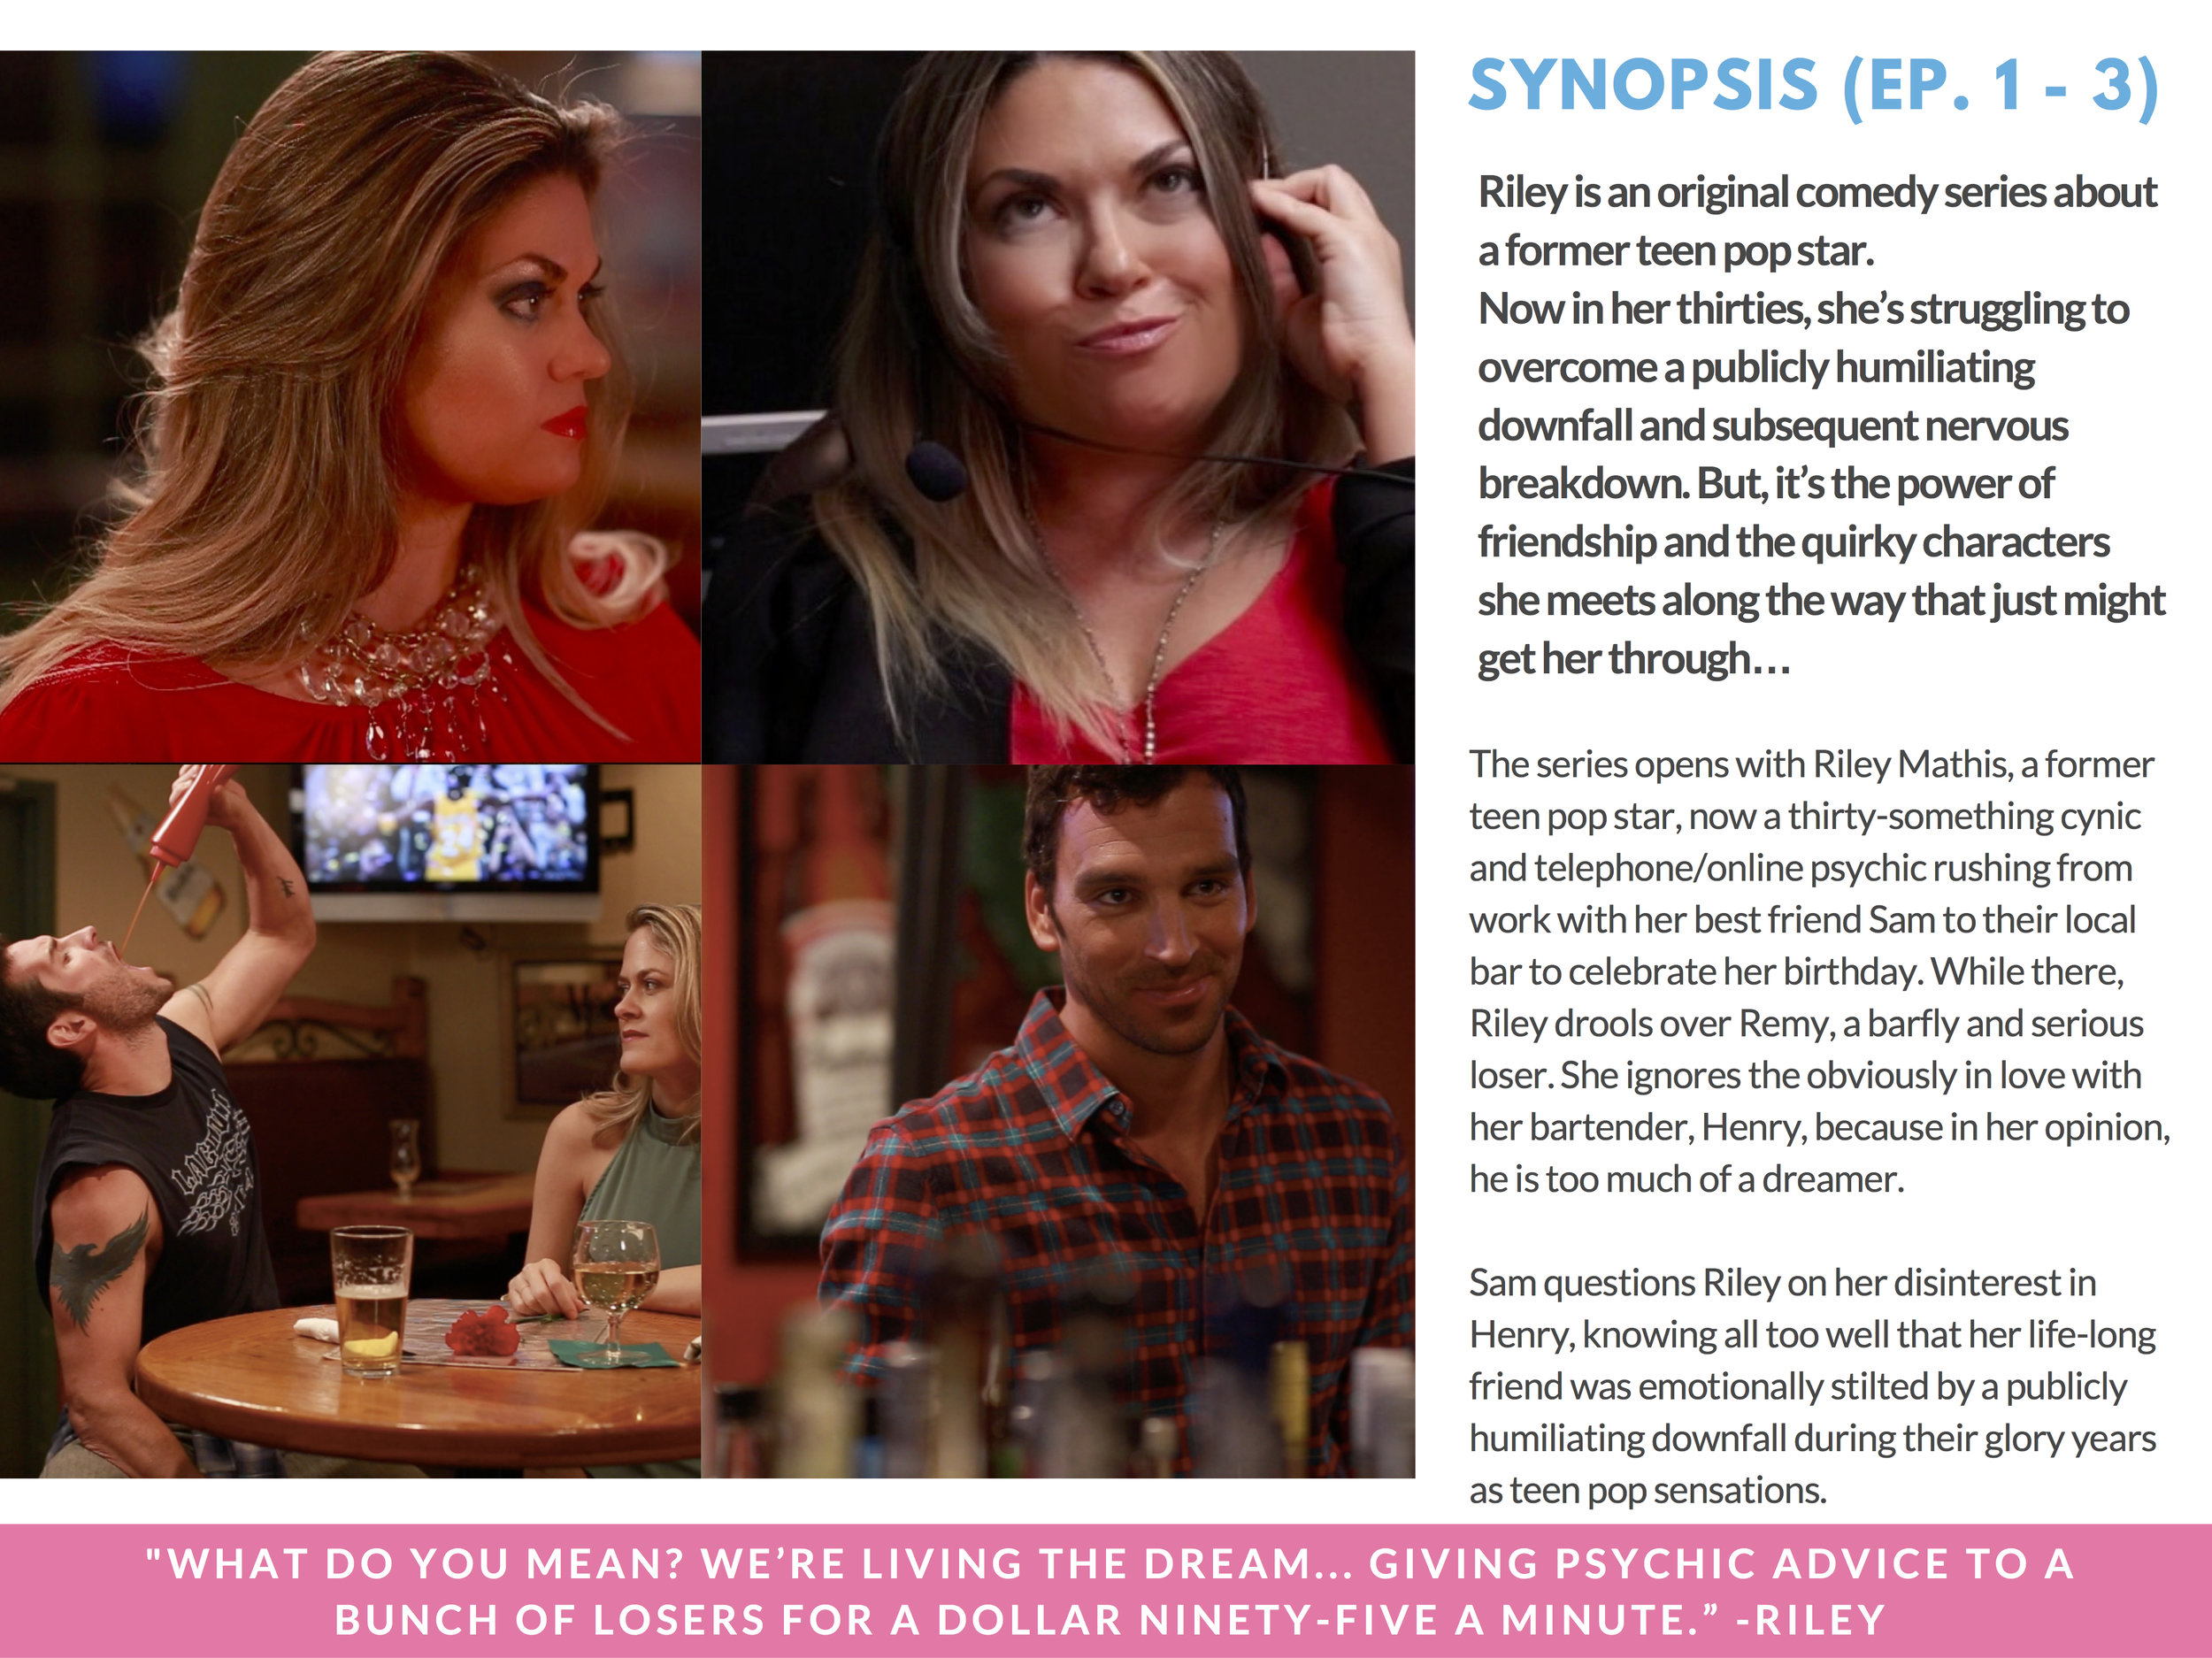 RILEY PRESS KIT - PAGE 5 ( SYNOPSIS )  - CLICK FOR HIGH RES JPEG